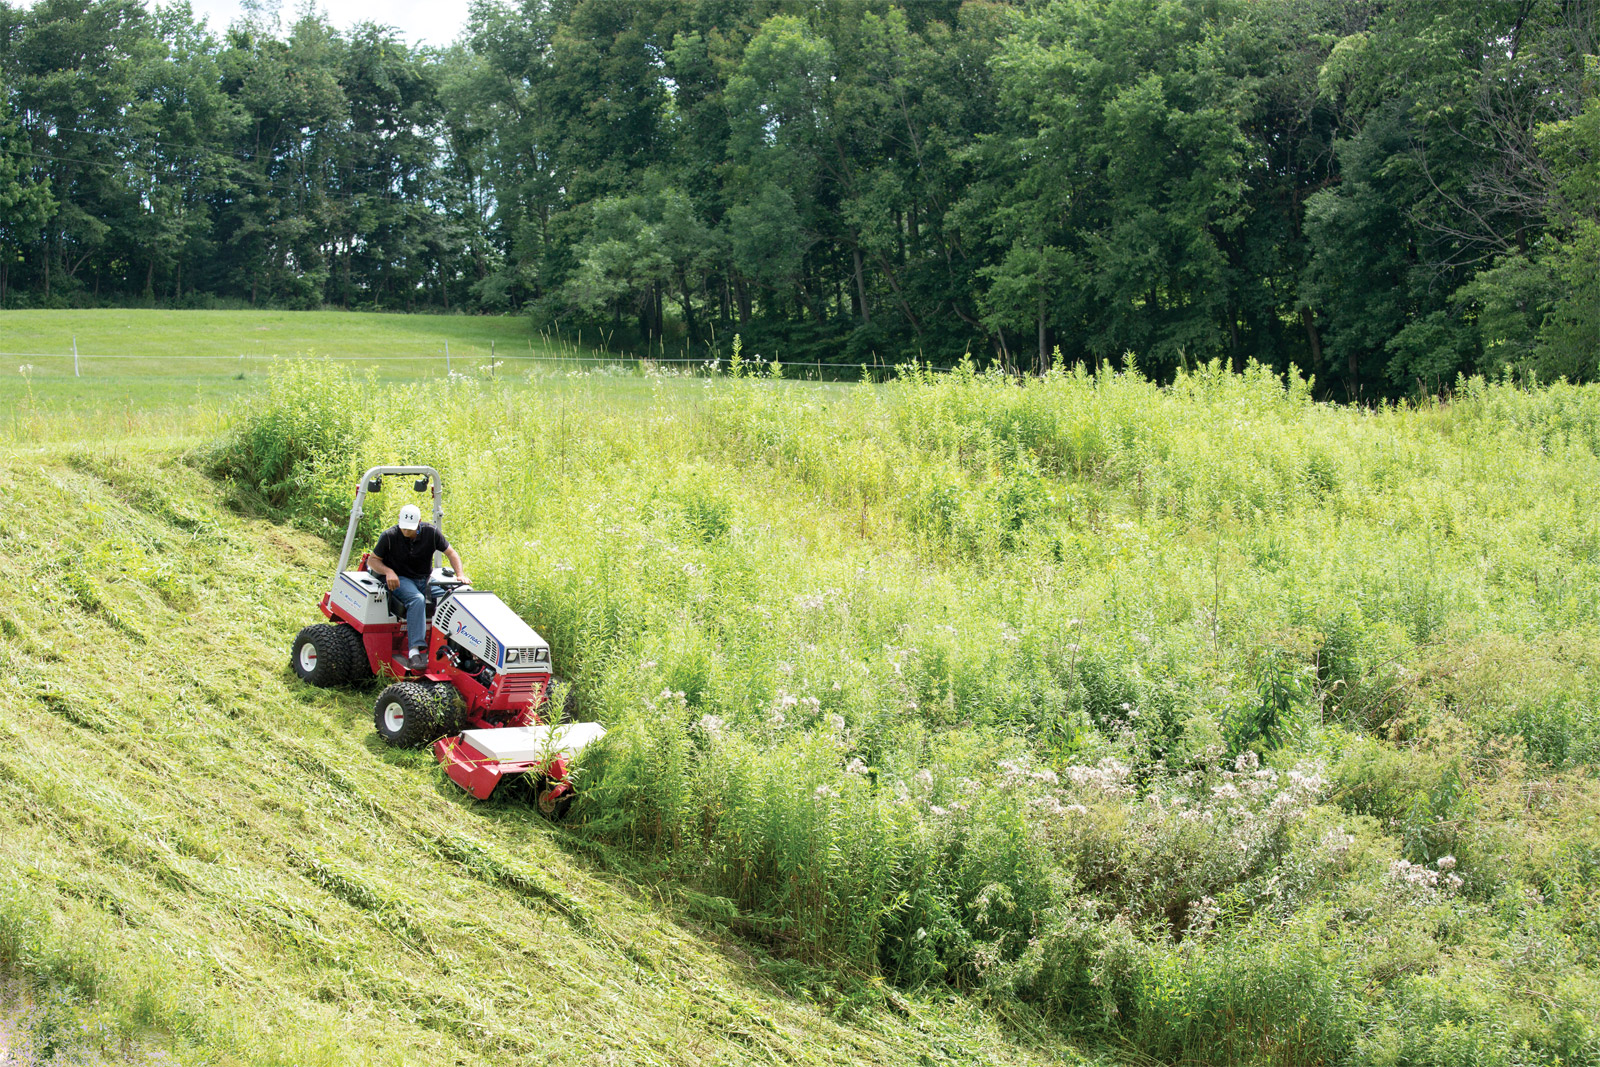 Ventrac 4500 With Tough Cut Mower Downhill Mowing Instead Of A Crew Guys